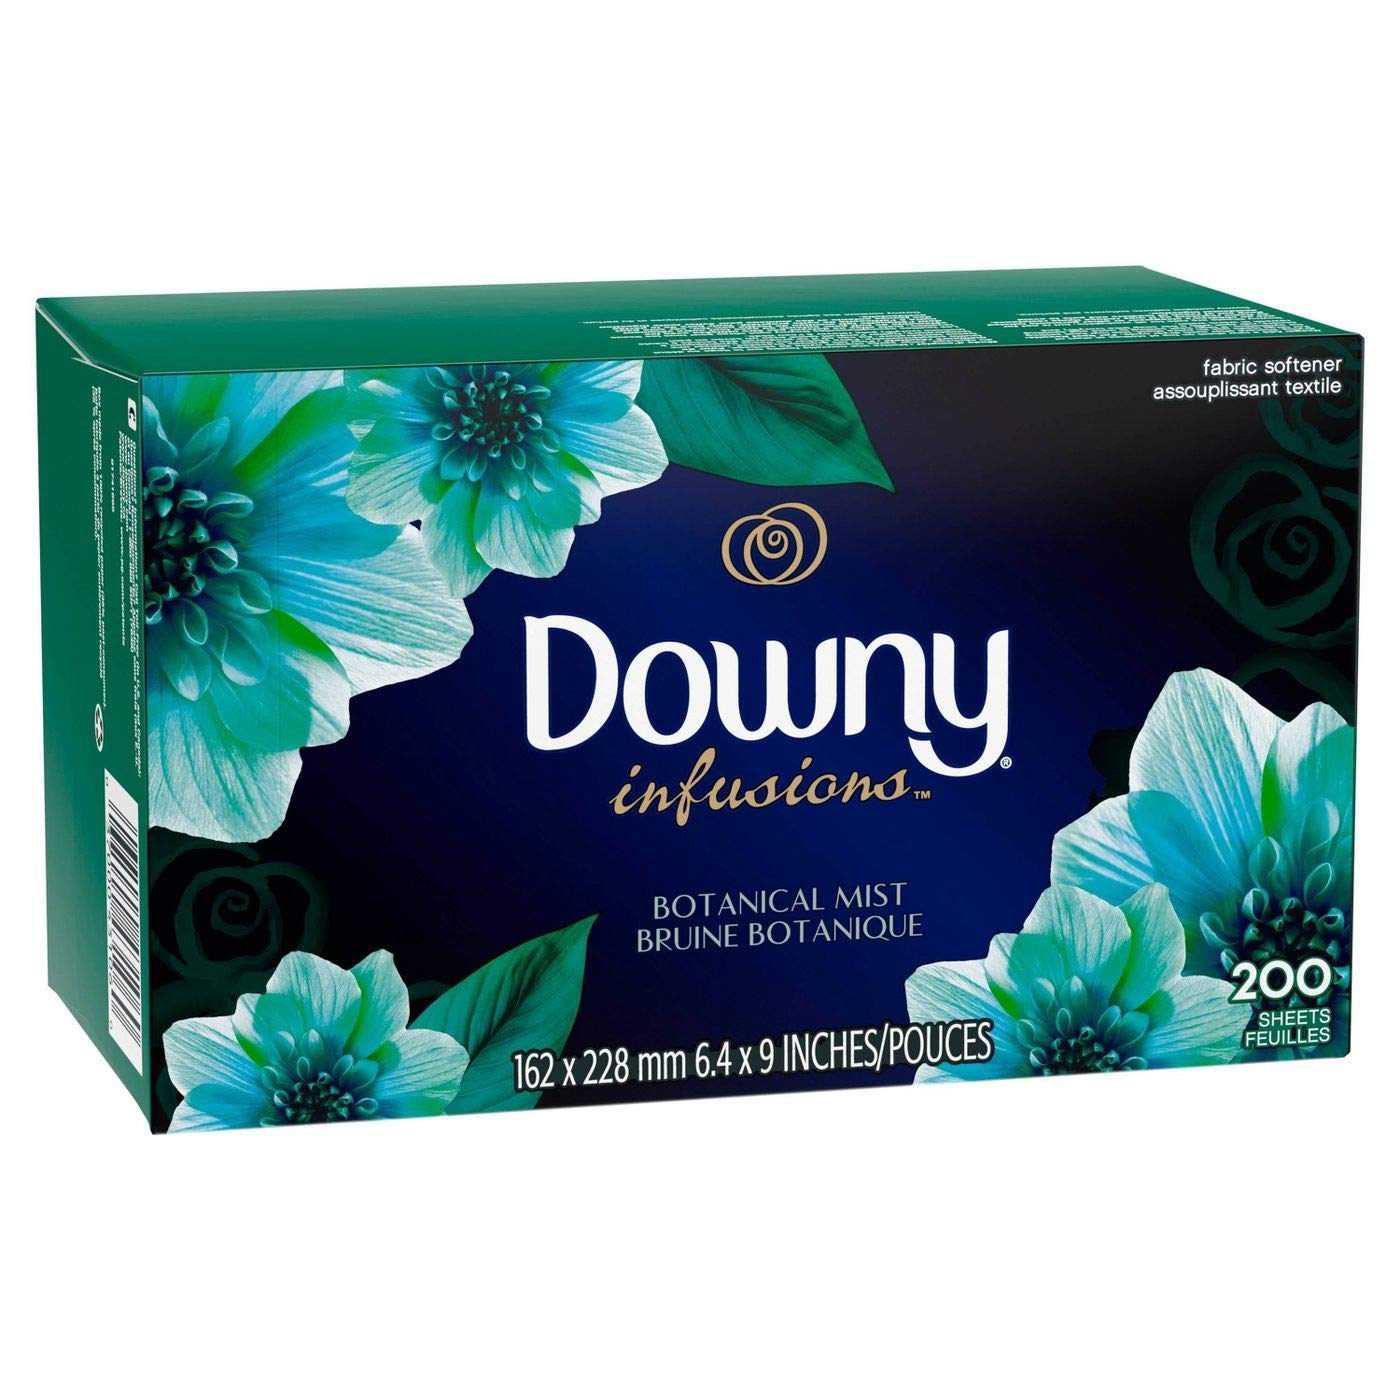 Downy Infusions Dryer Sheets, 200 Count, Botanical Mist